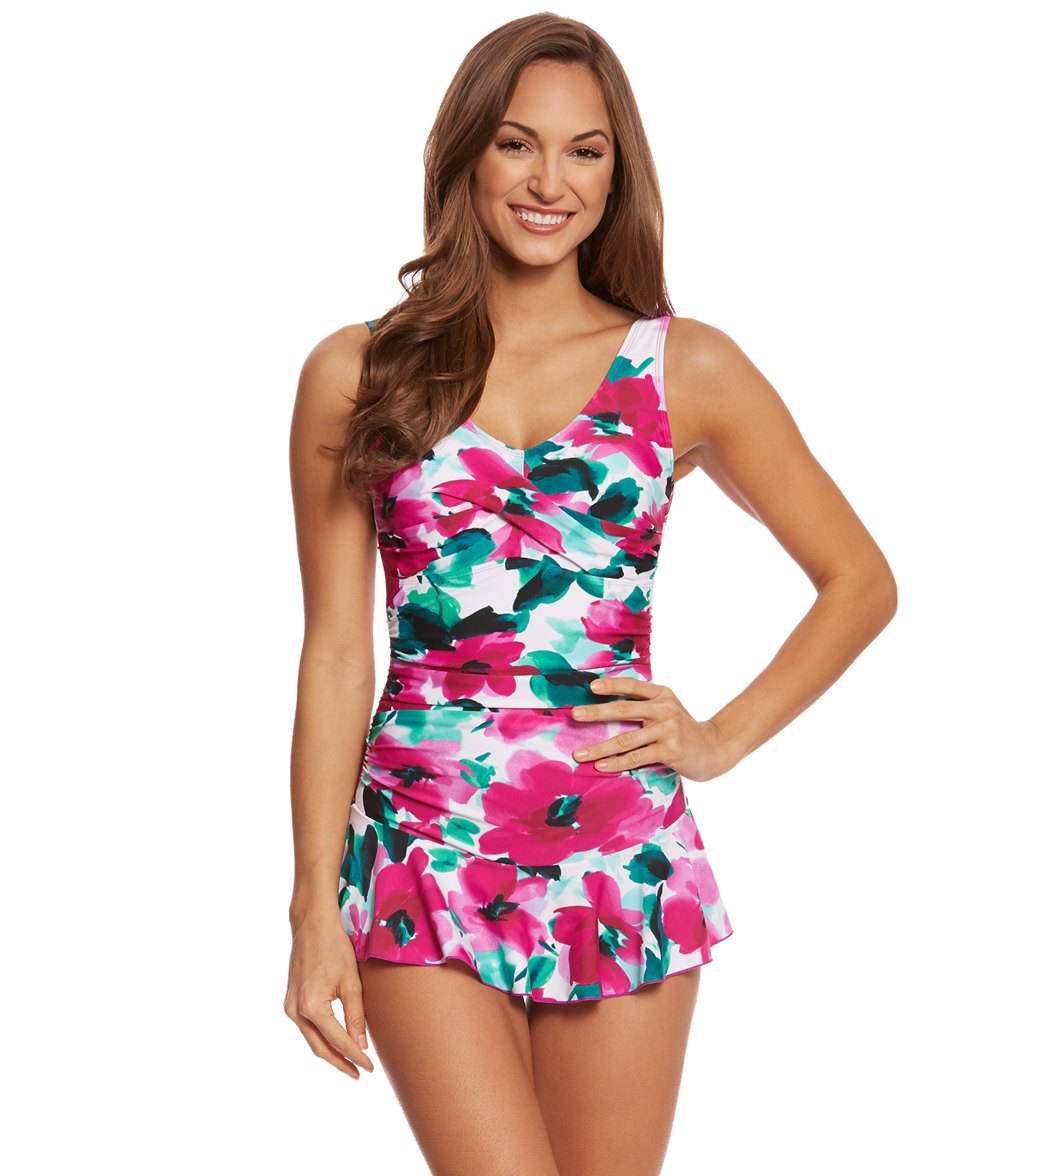 Ceeb Hibiscus Skirted One Piece Swimsuit At Swimoutlet Free